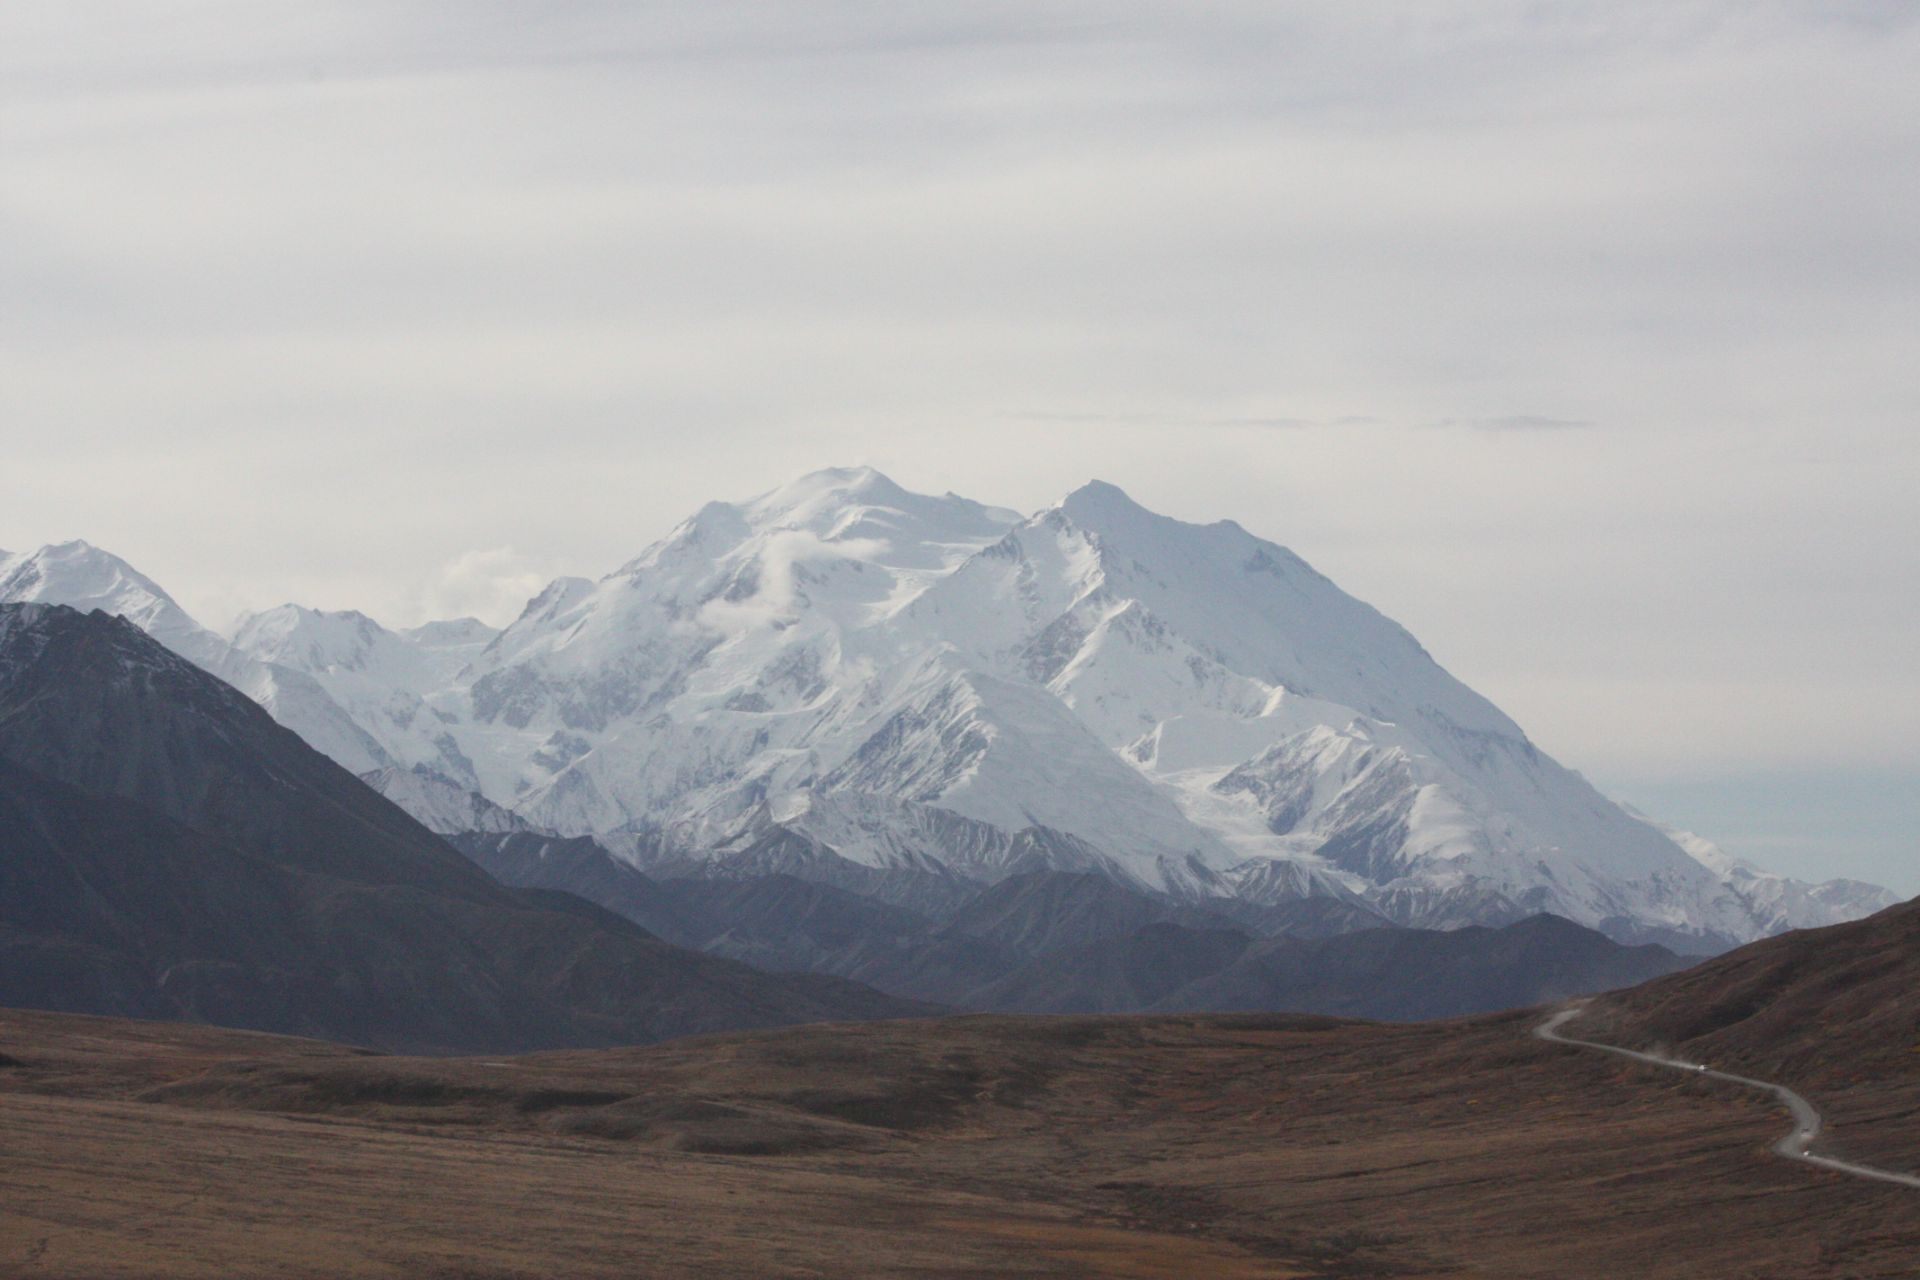 Denali, the highest mountain in North America, rises above a valley and the park road in Denali National Park